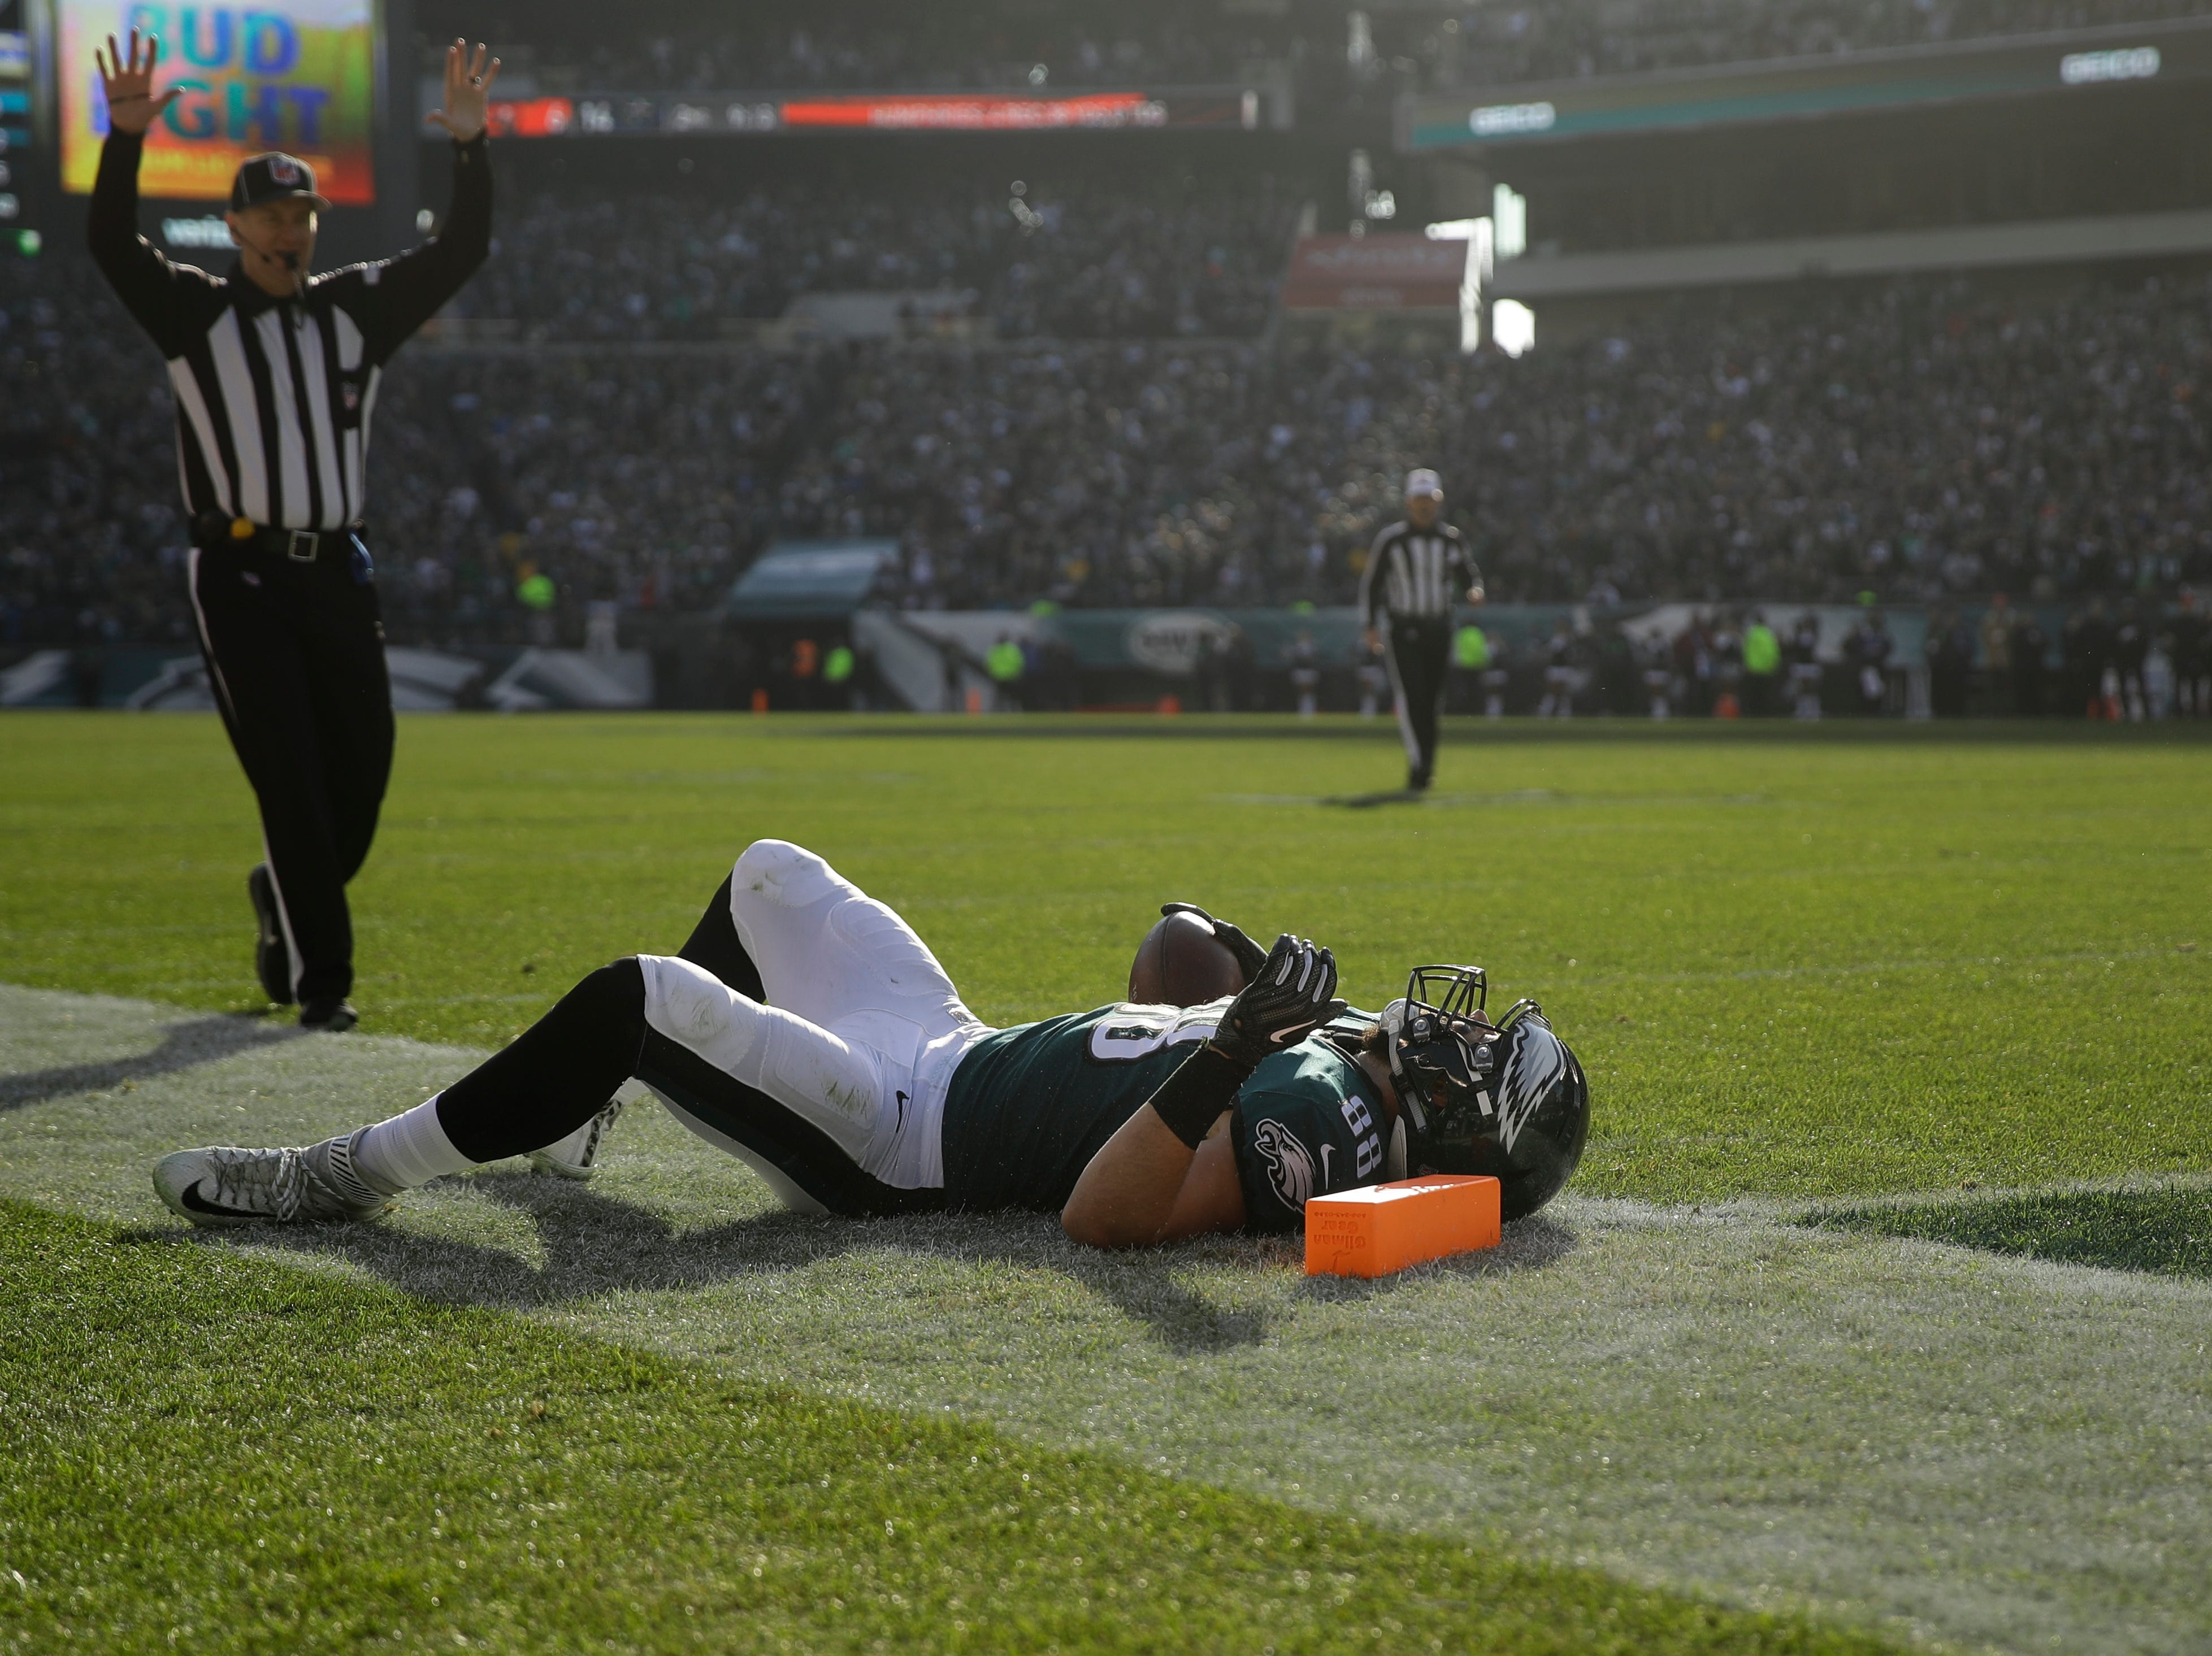 Philadelphia Eagles' Dallas Goedert reacts after missing a touchdown during the first half of an NFL football game against the Houston Texans, Sunday, Dec. 23, 2018, in Philadelphia. (AP Photo/Matt Rourke)